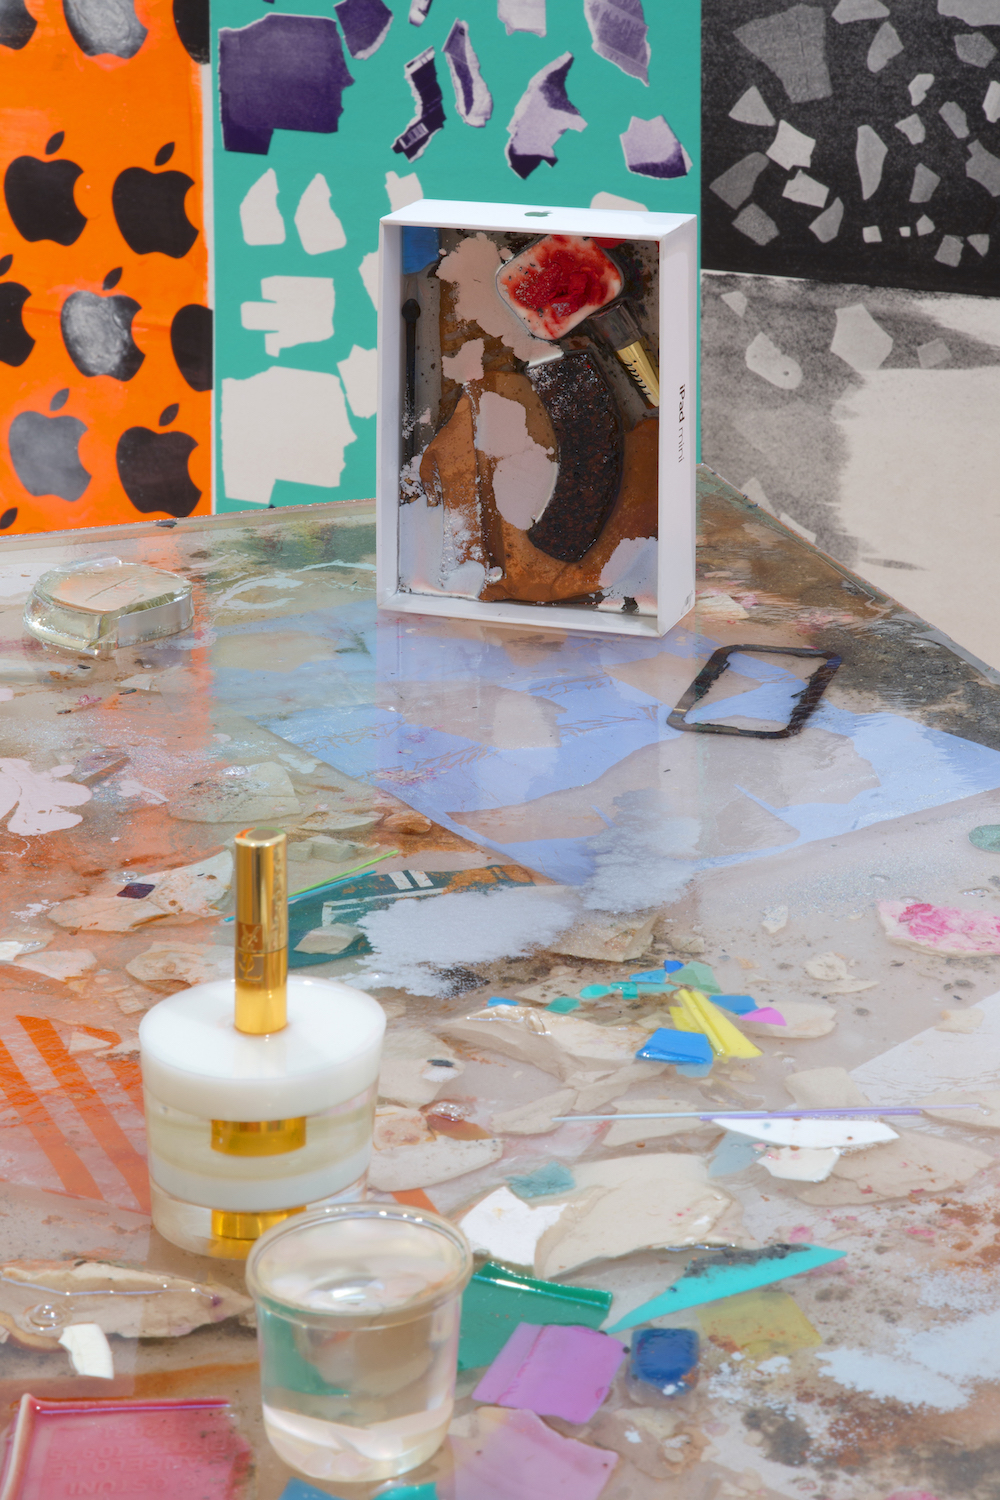 Ludovica Gioscia, Appetite For Great Design (detail), 2014. Resin cast of an Ikea table top, ash, plastic debris, metal, plaster, Ikea table legs, Ipad box, terracotta, make-up, paper, acrylic paint. 93 x 60 x 99 cm.